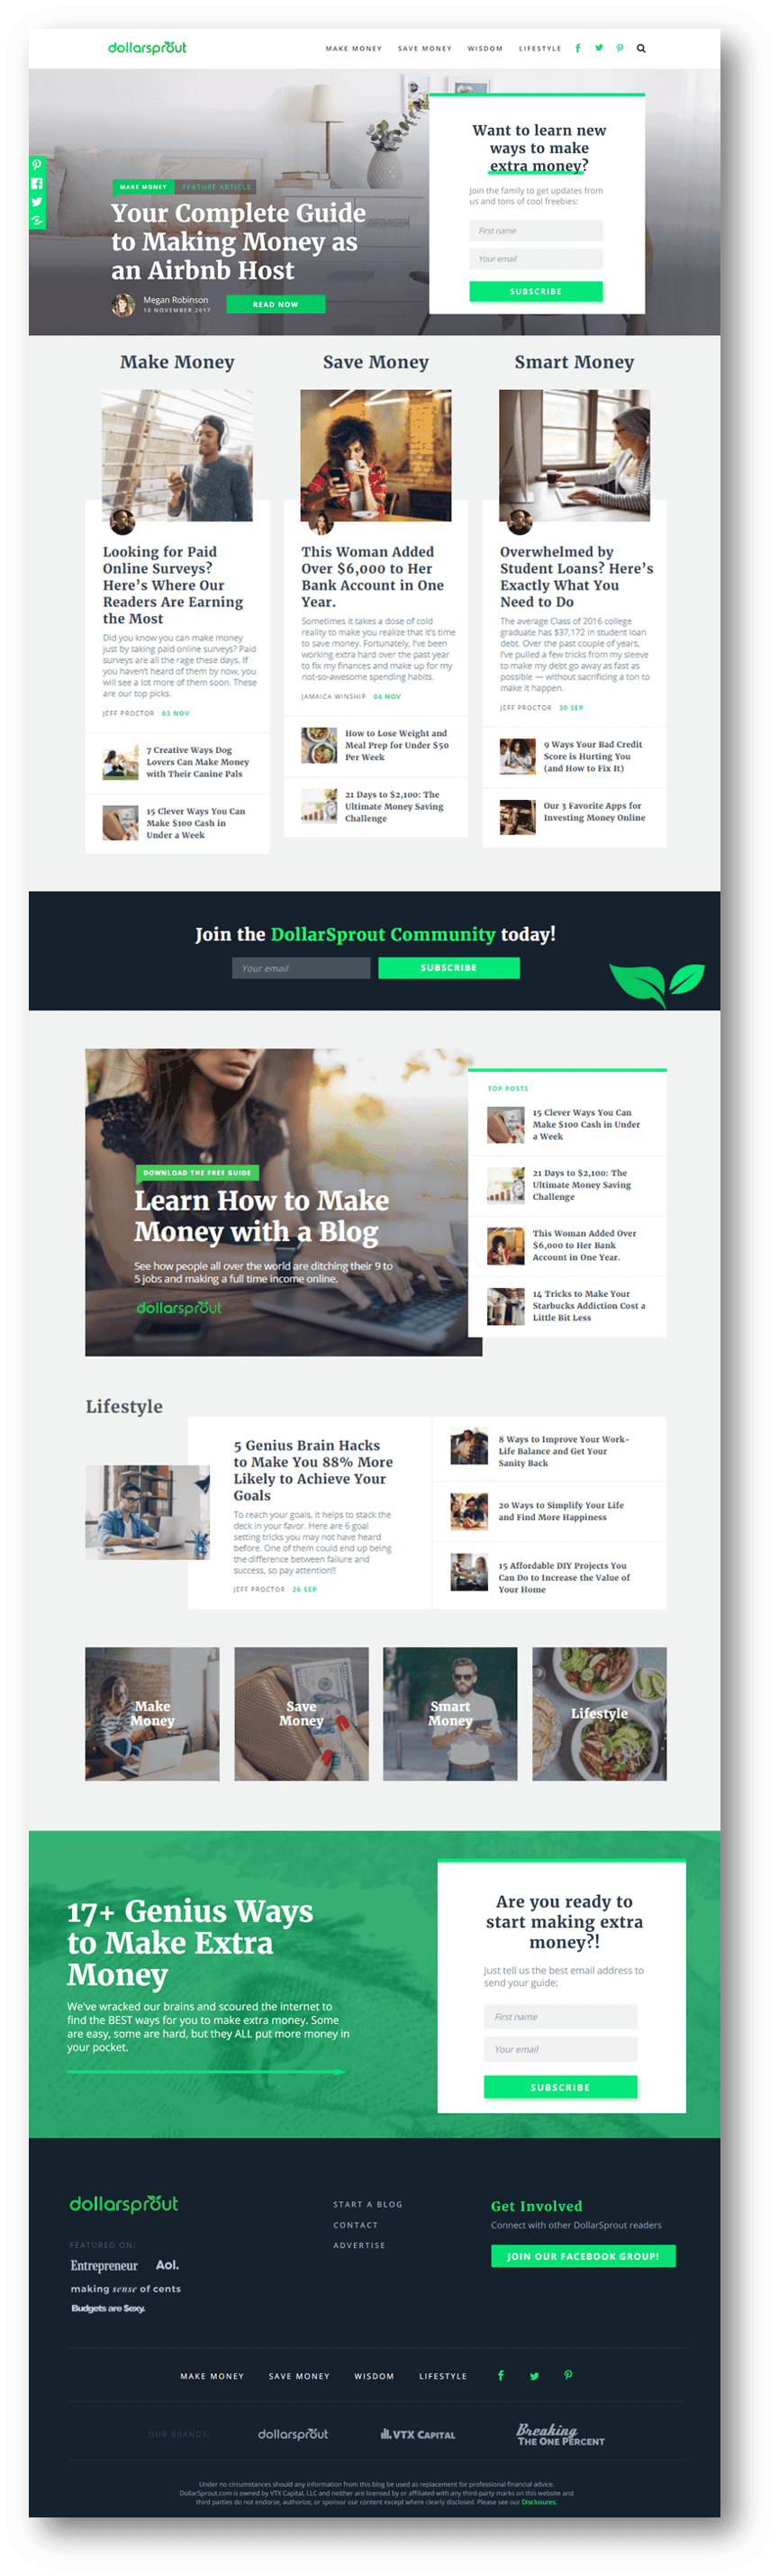 The product of an awesome web design process.